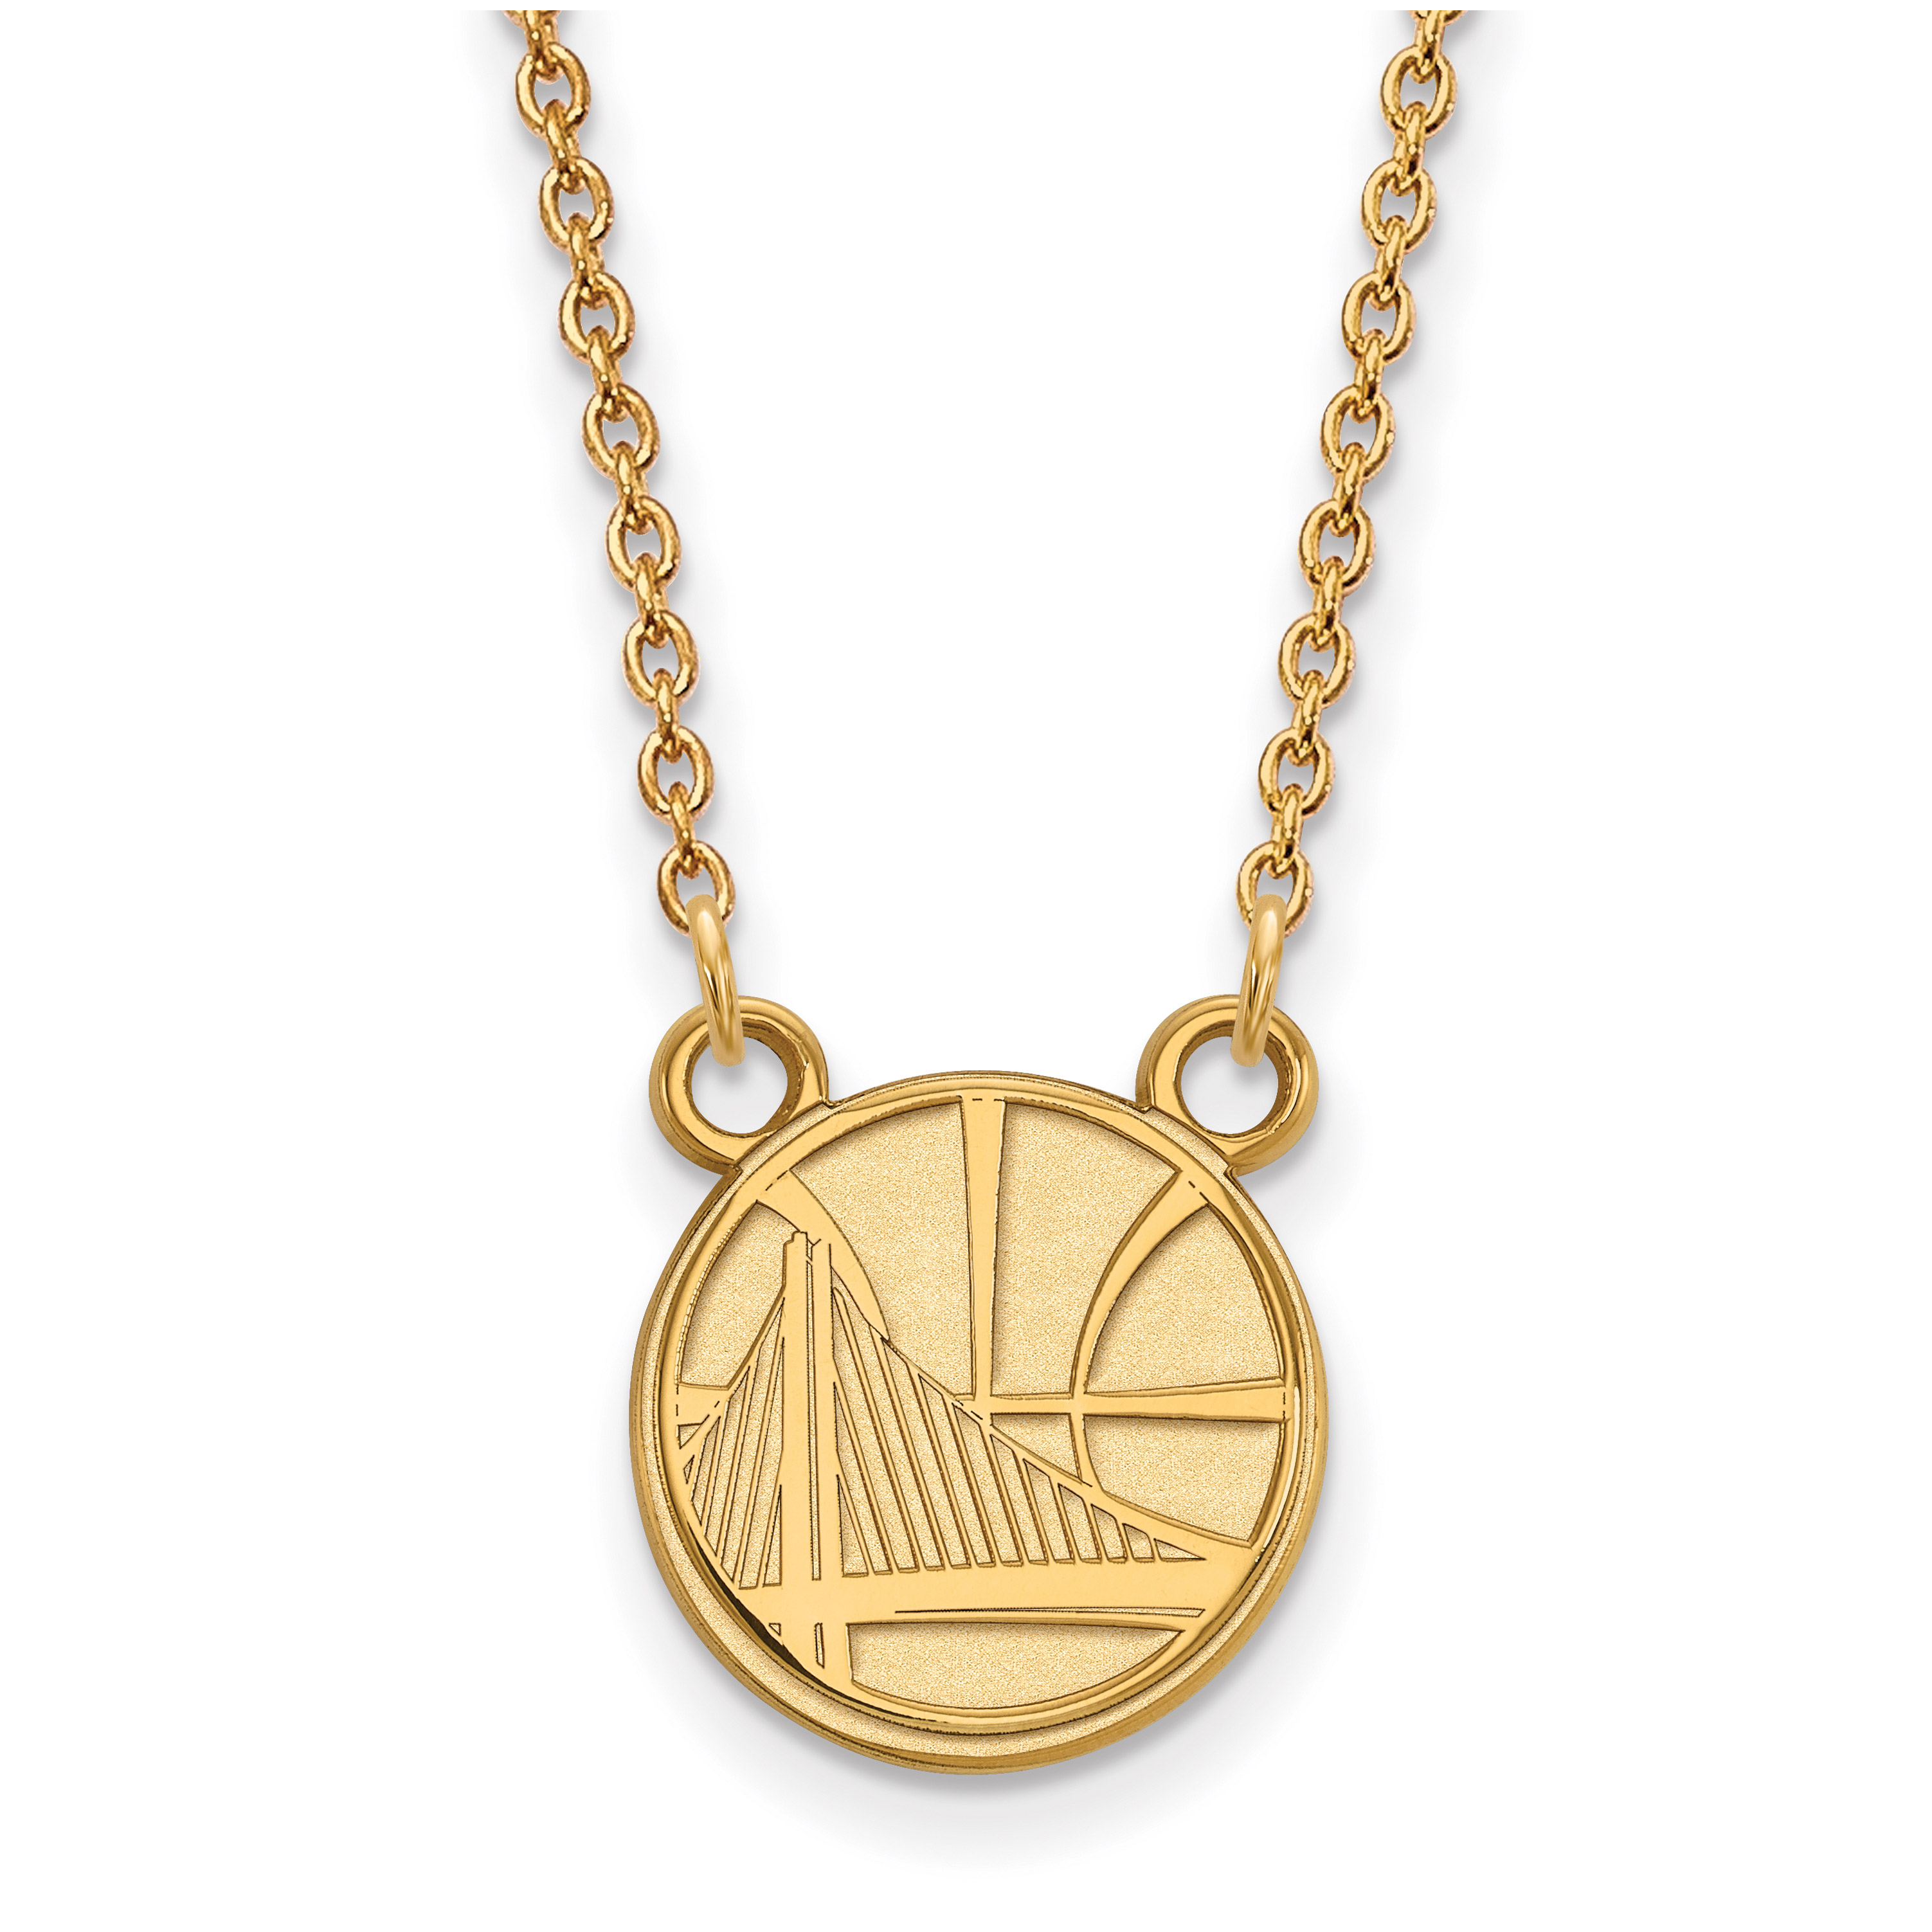 Golden State Warriors Women's Gold Plated Pendant Necklace - No Size